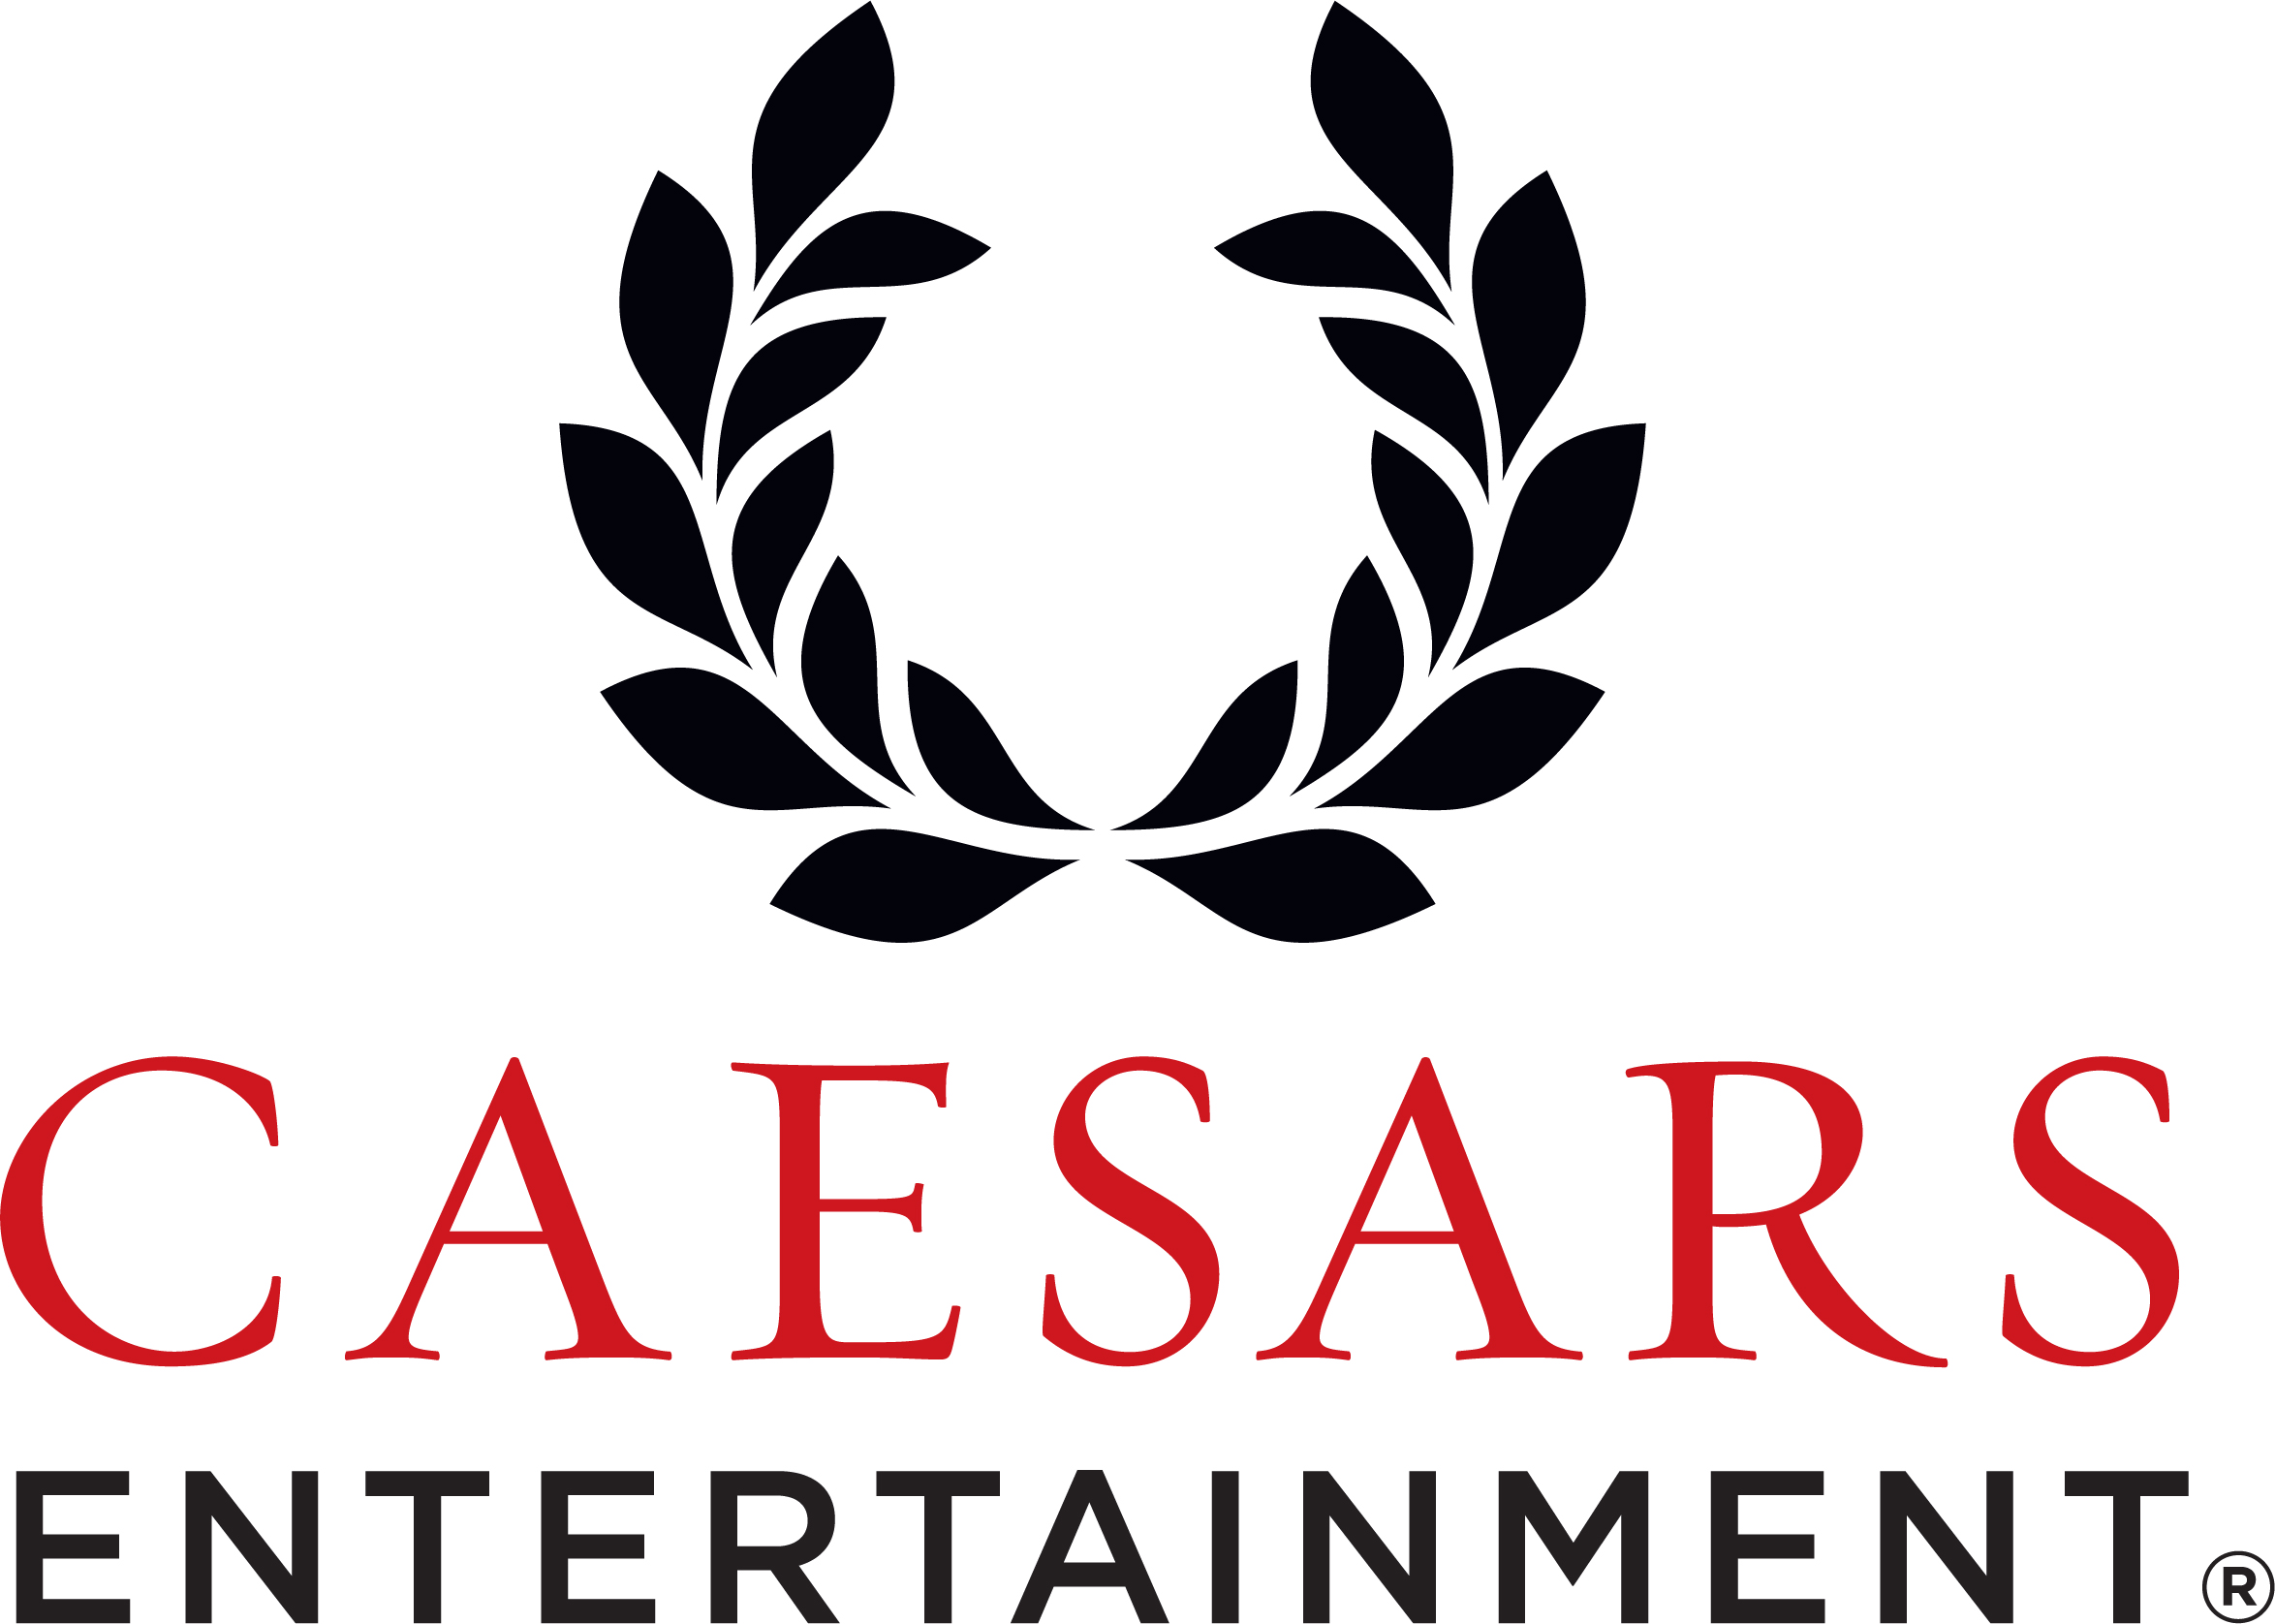 Ceasars Entertainment